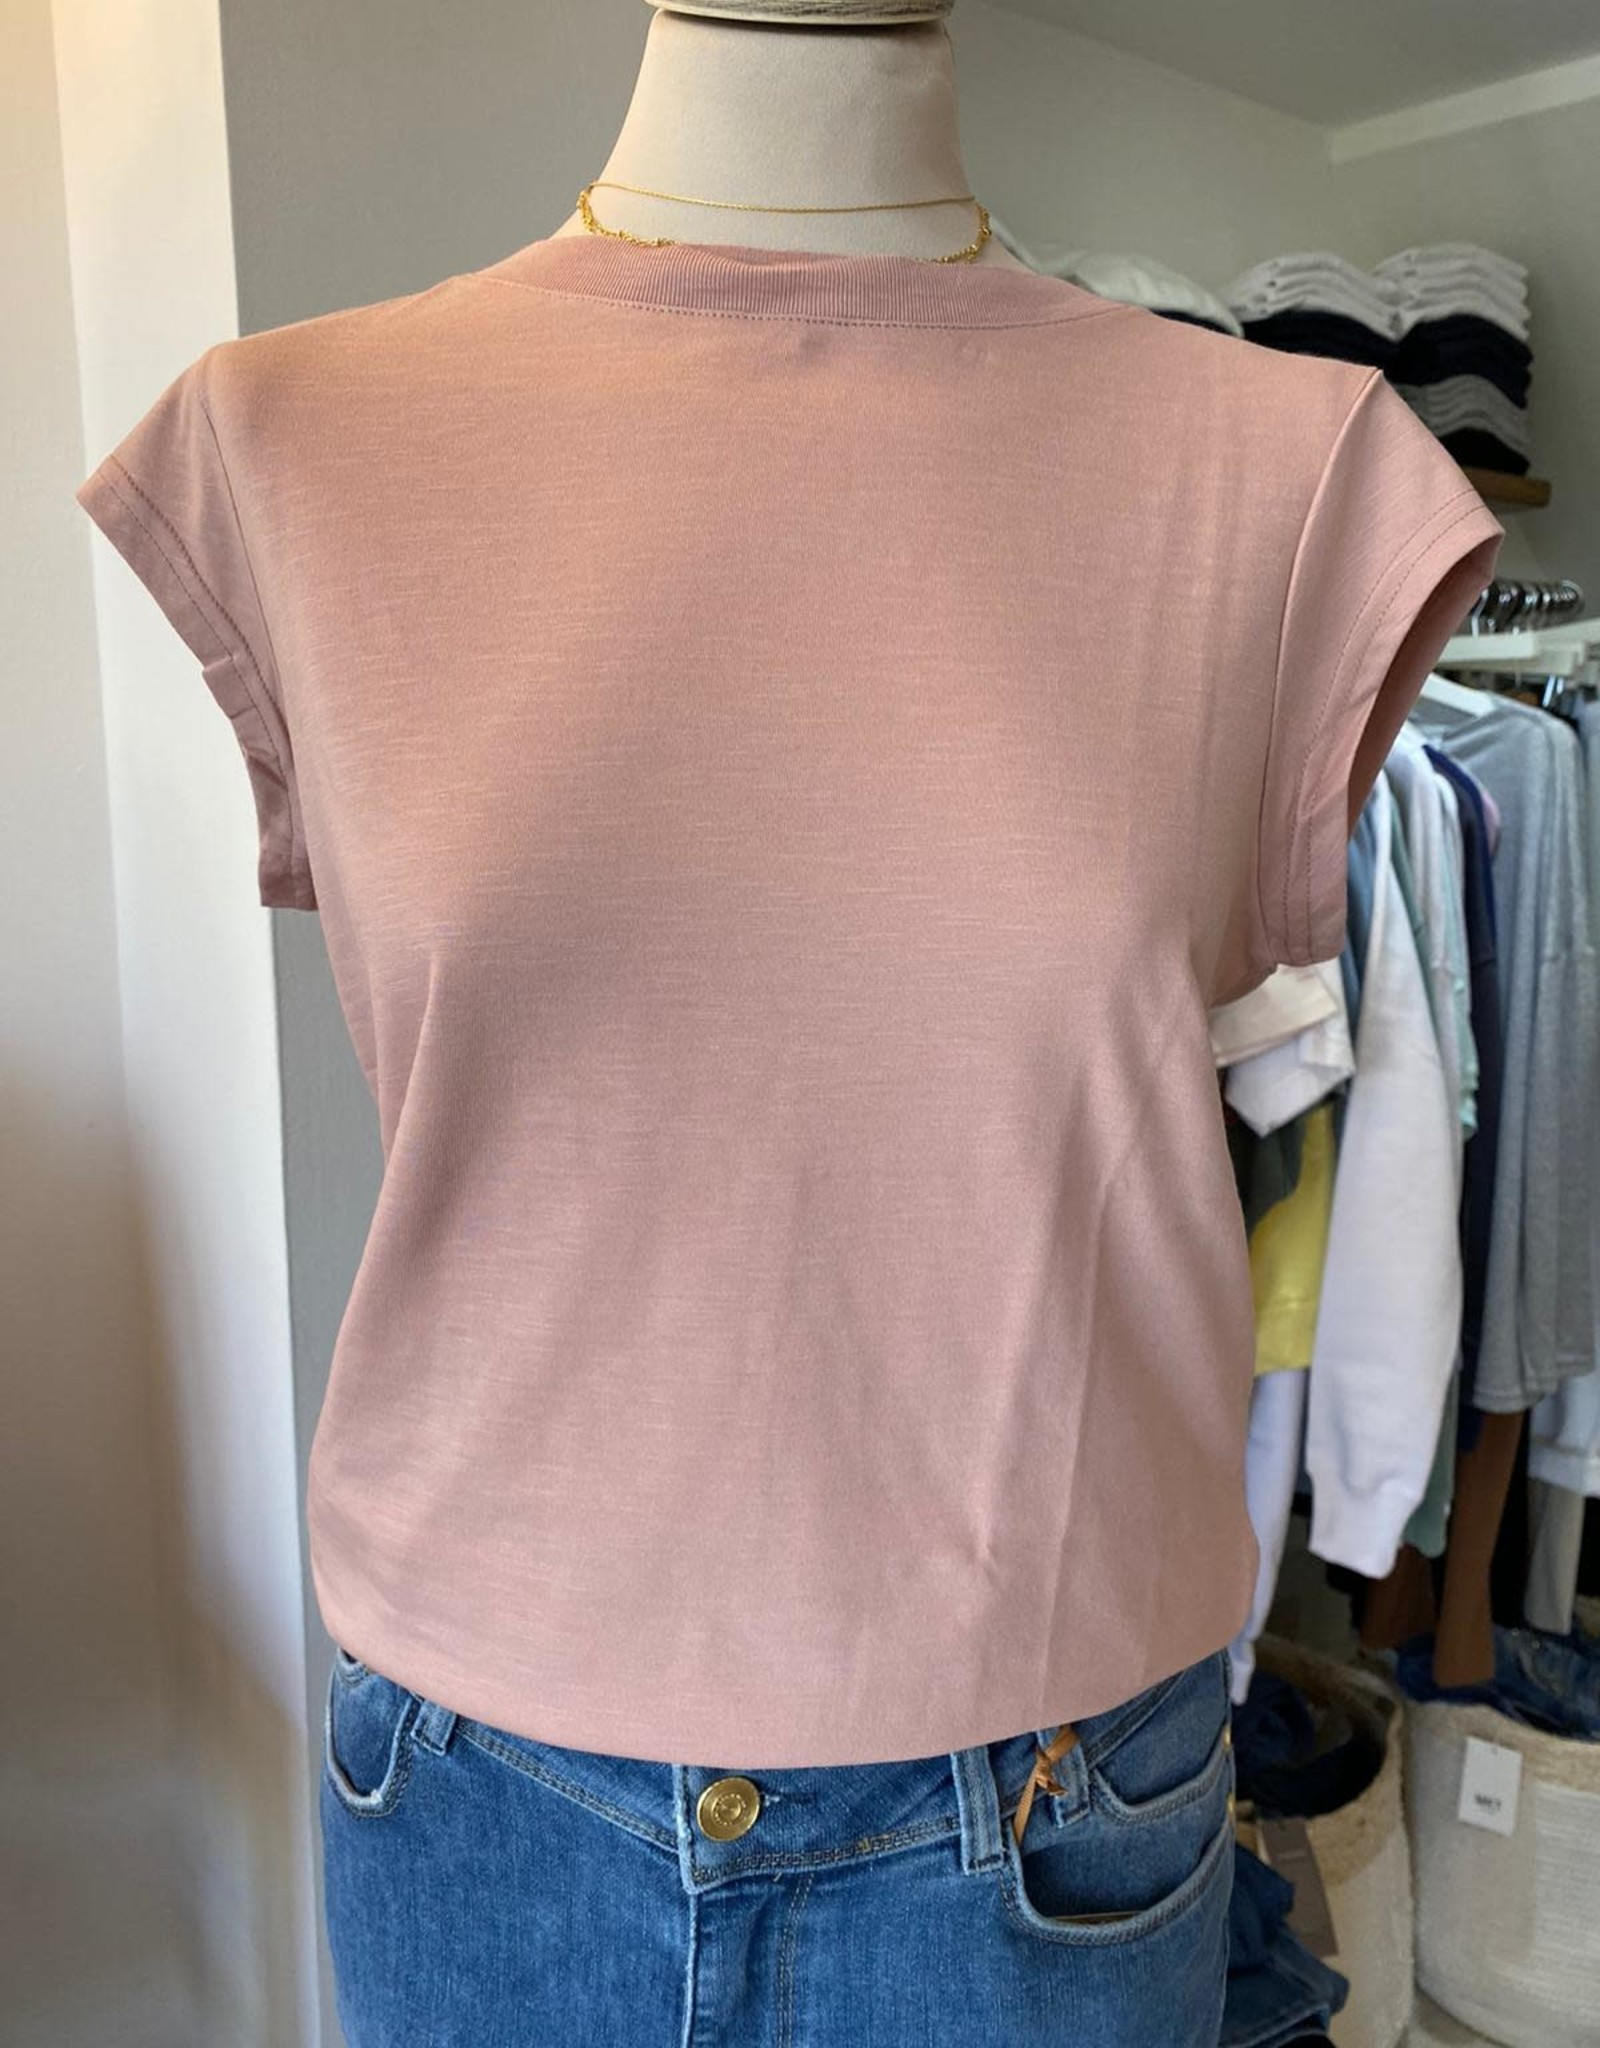 COSTER COPENHAGEN BASIC ROUND-NECK OLD ROSE  690 T-SHIRT B0017 / CCH1100 BY COSTER